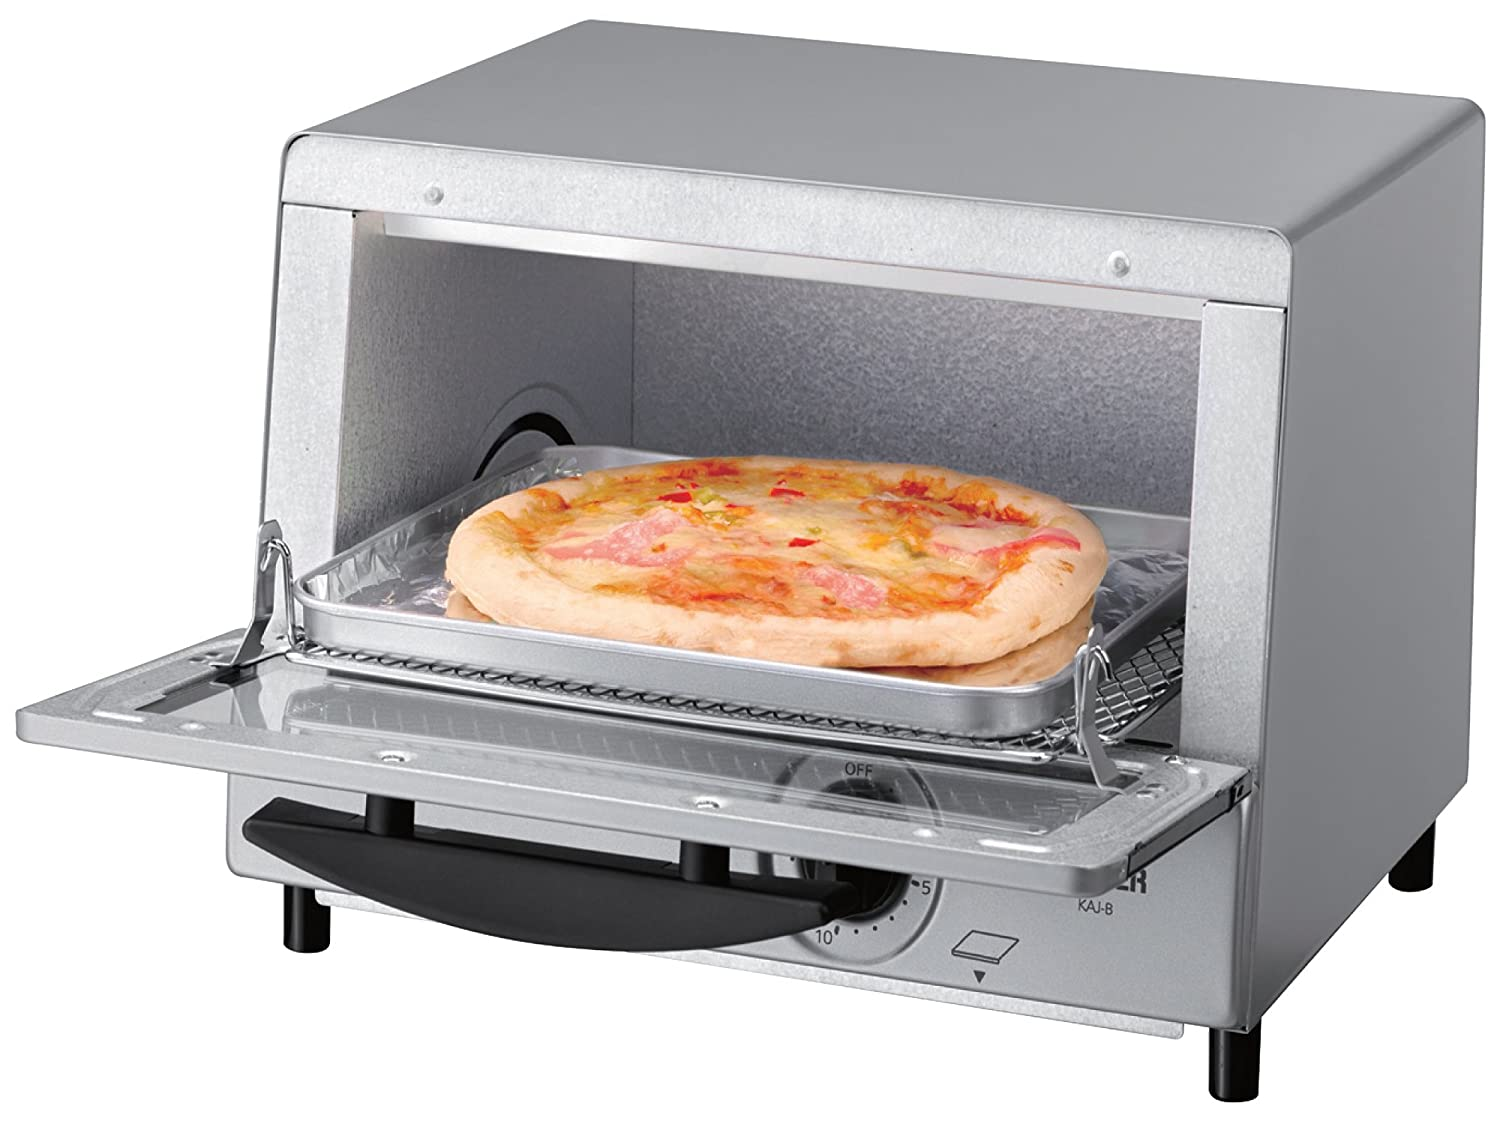 ft canada steel oven best toaster convection cu en ovens infrared toasters category buy stainless ca cuisinart deluxe